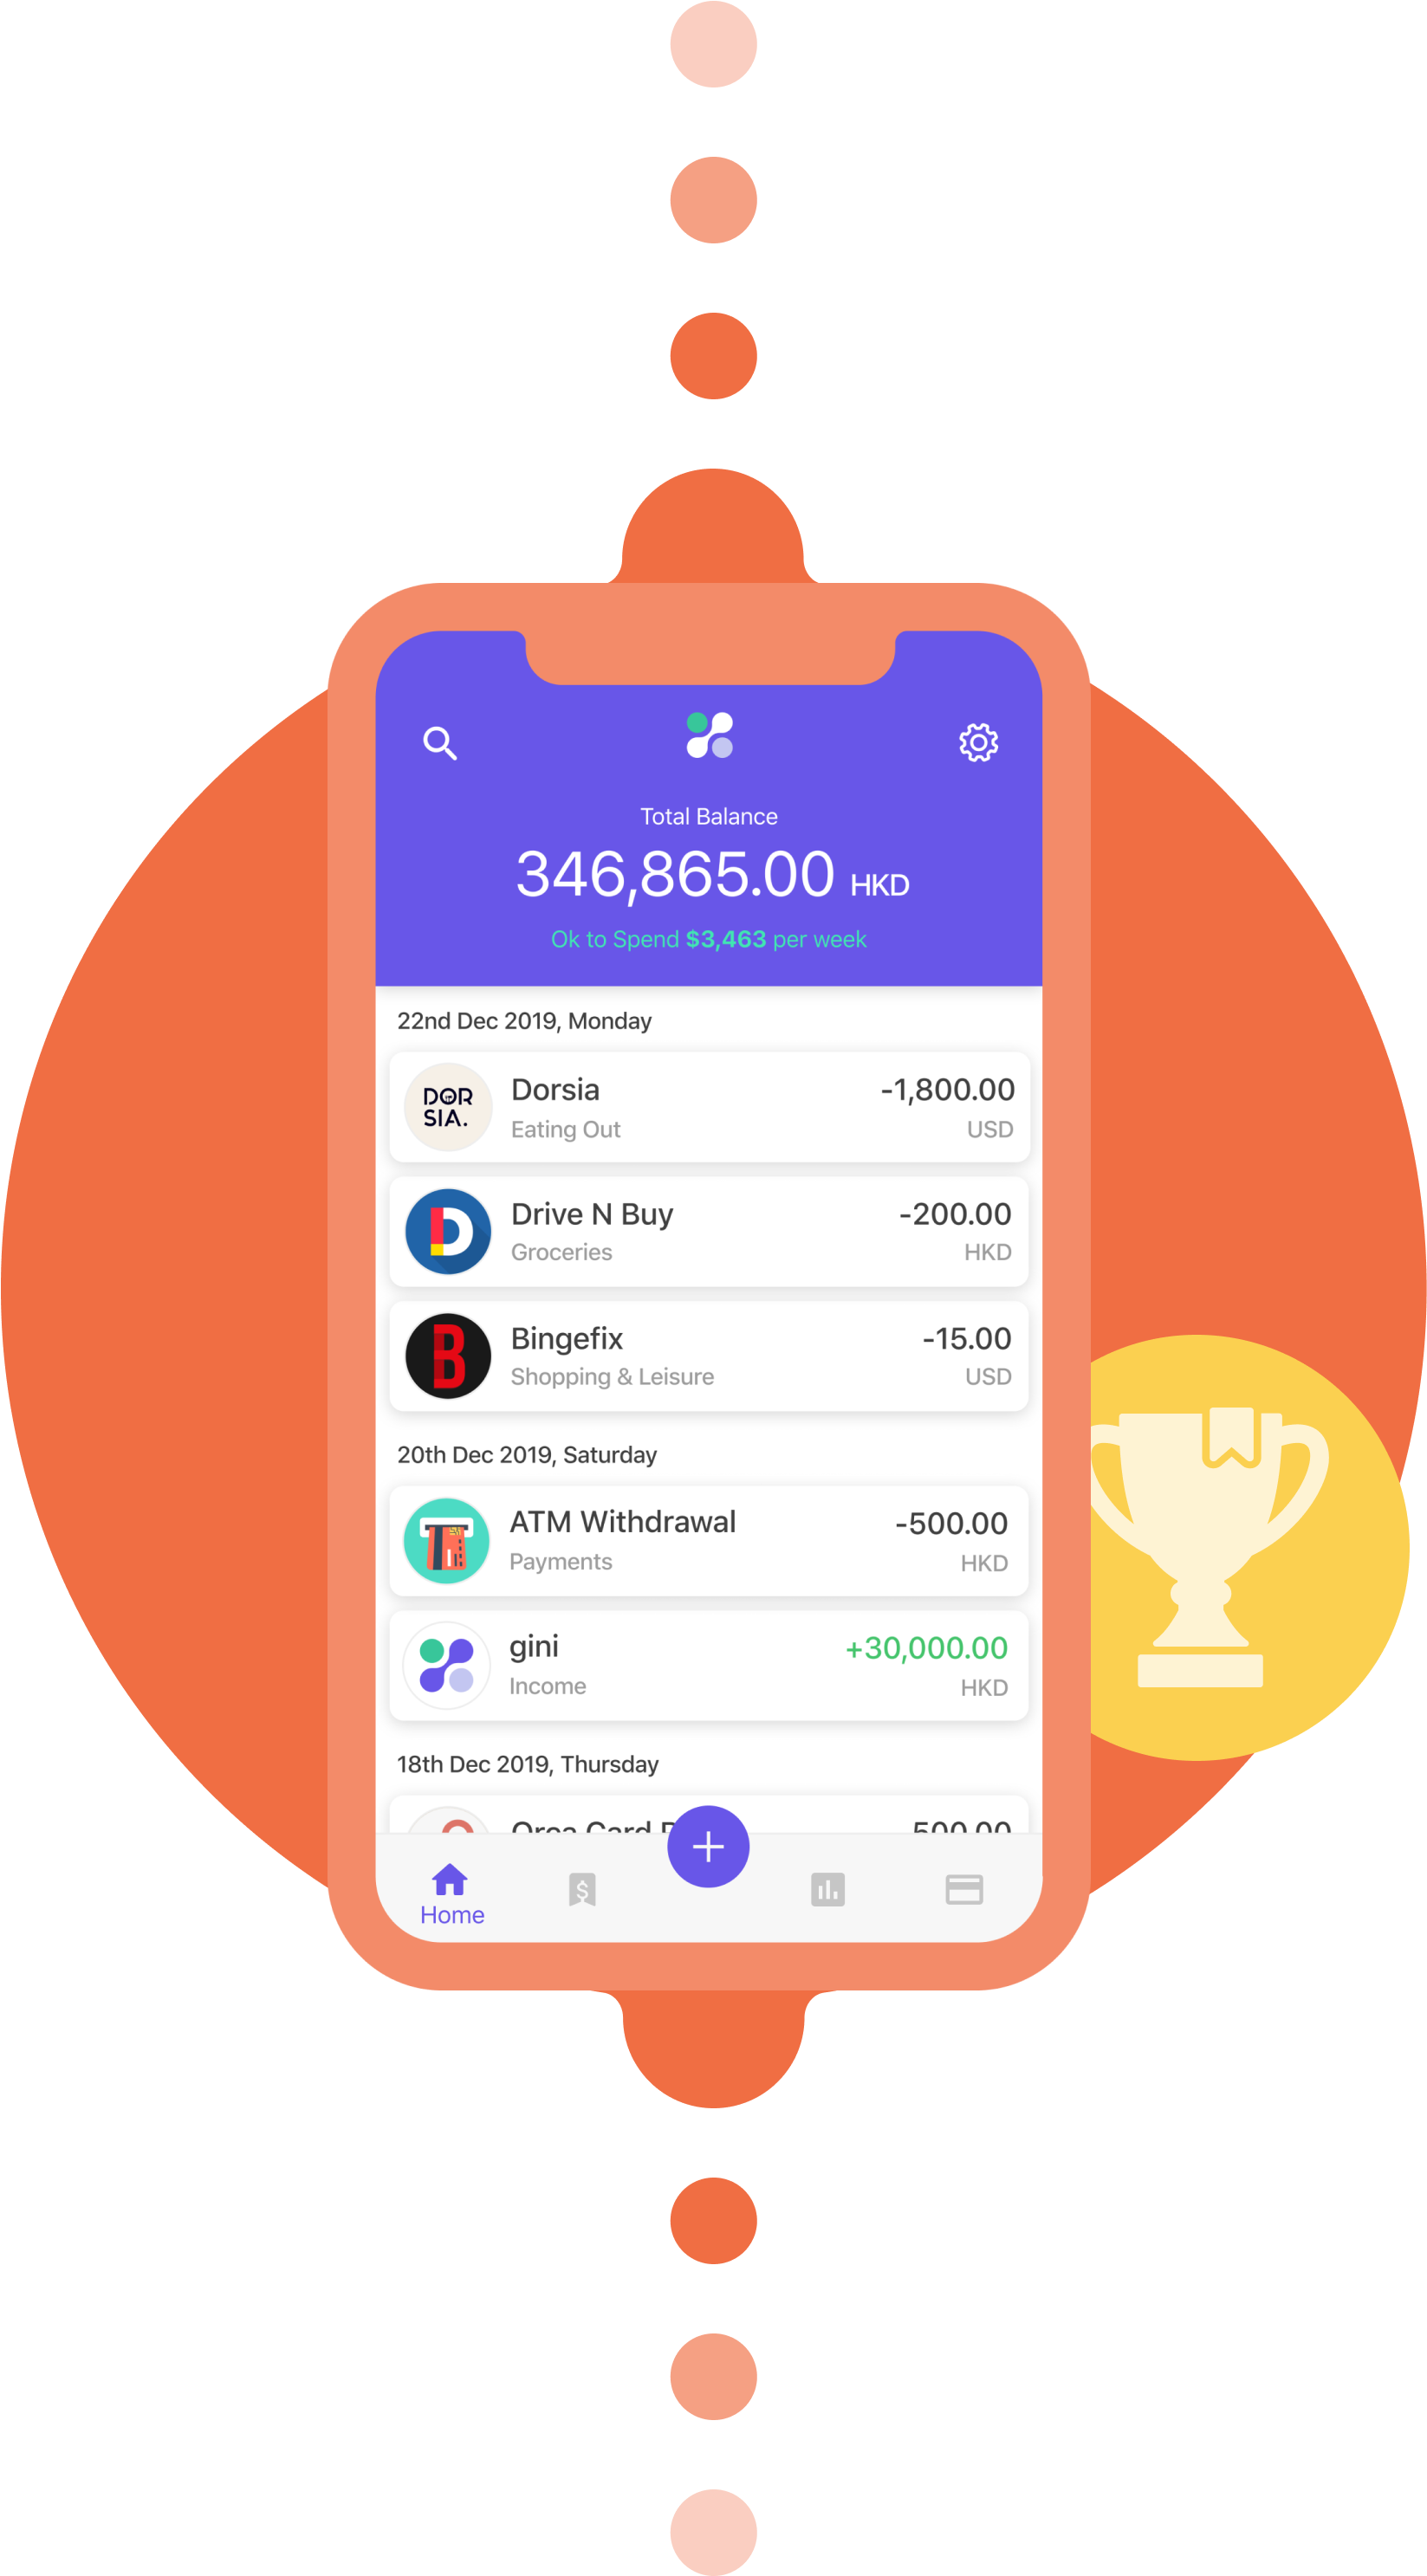 gini's award-winning personal finance app